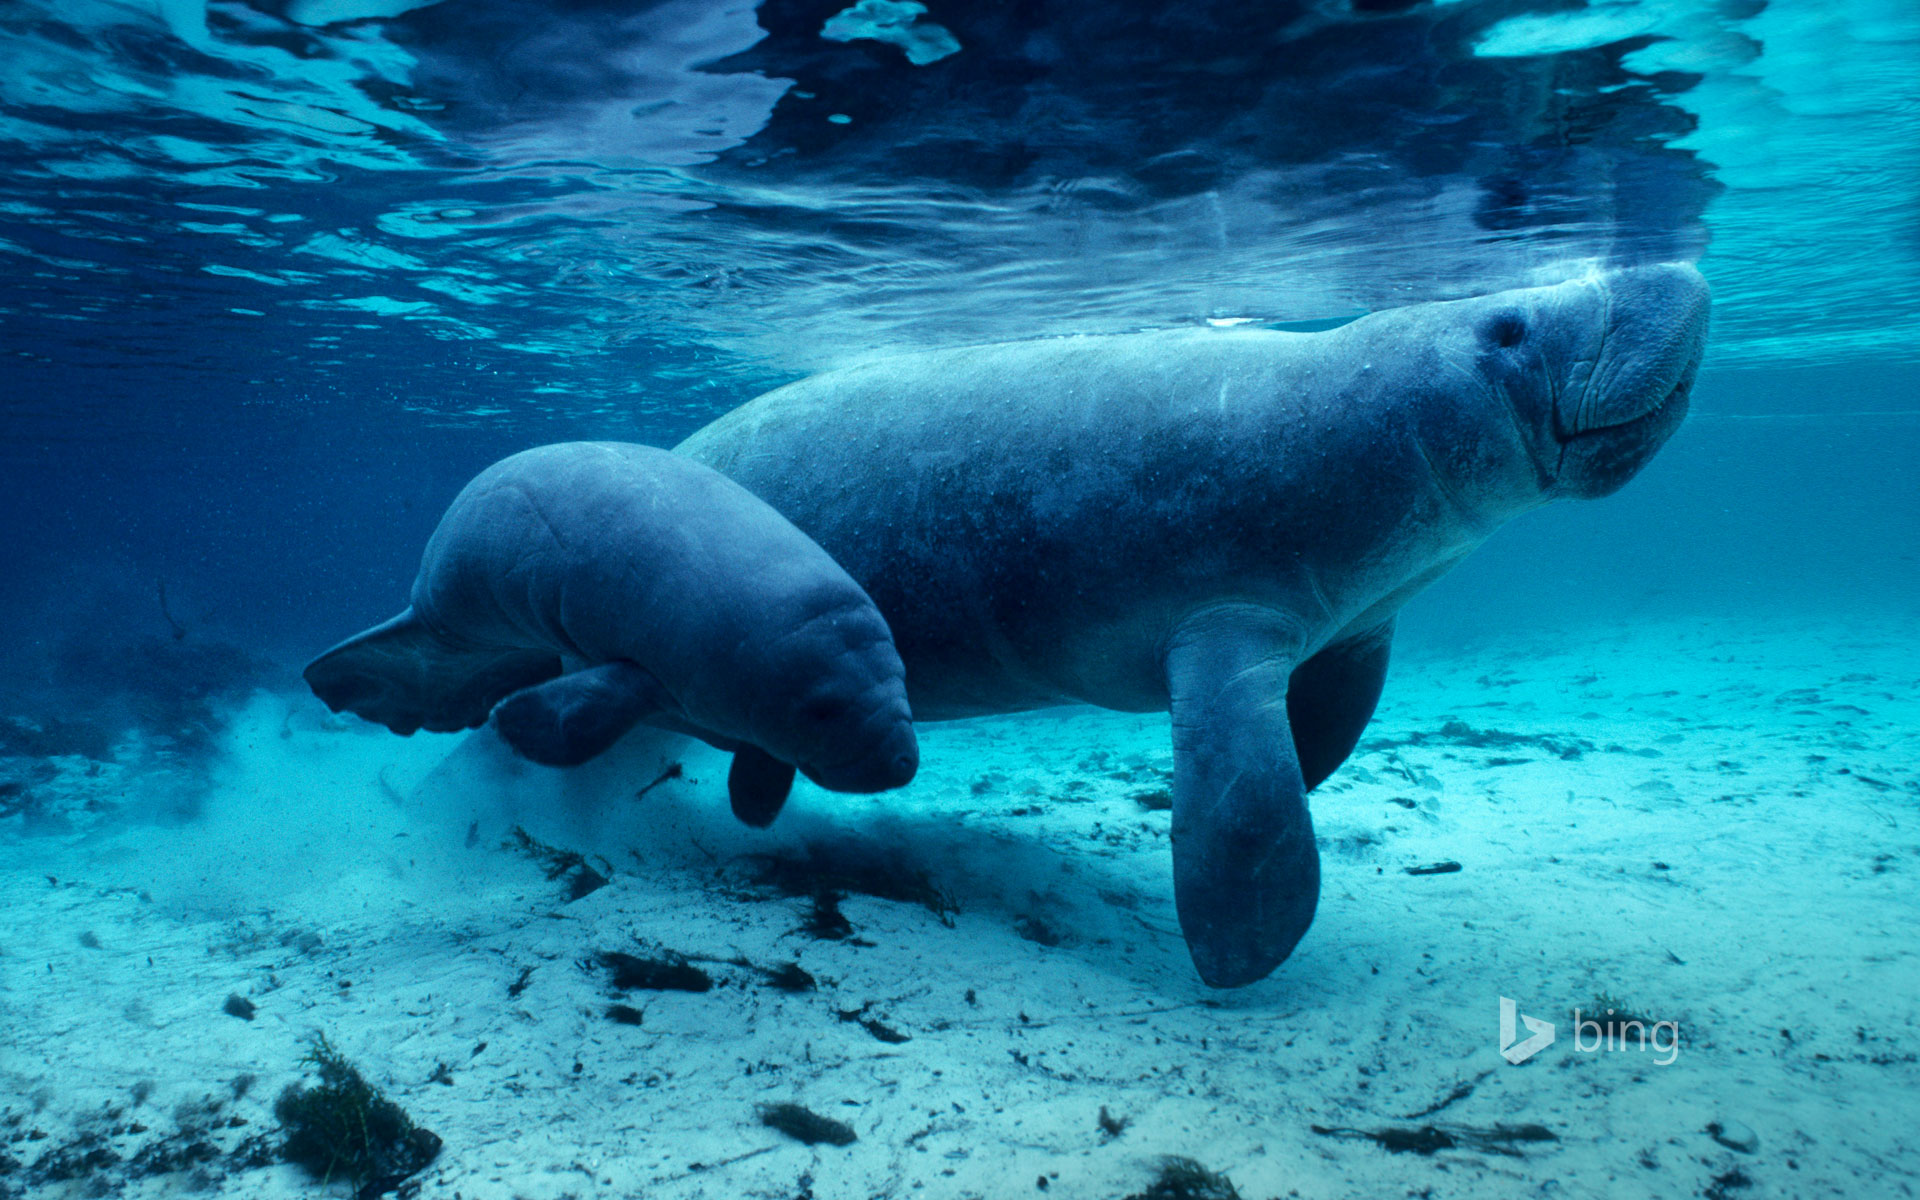 West Indian manatees in the Crystal River, Florida, USA